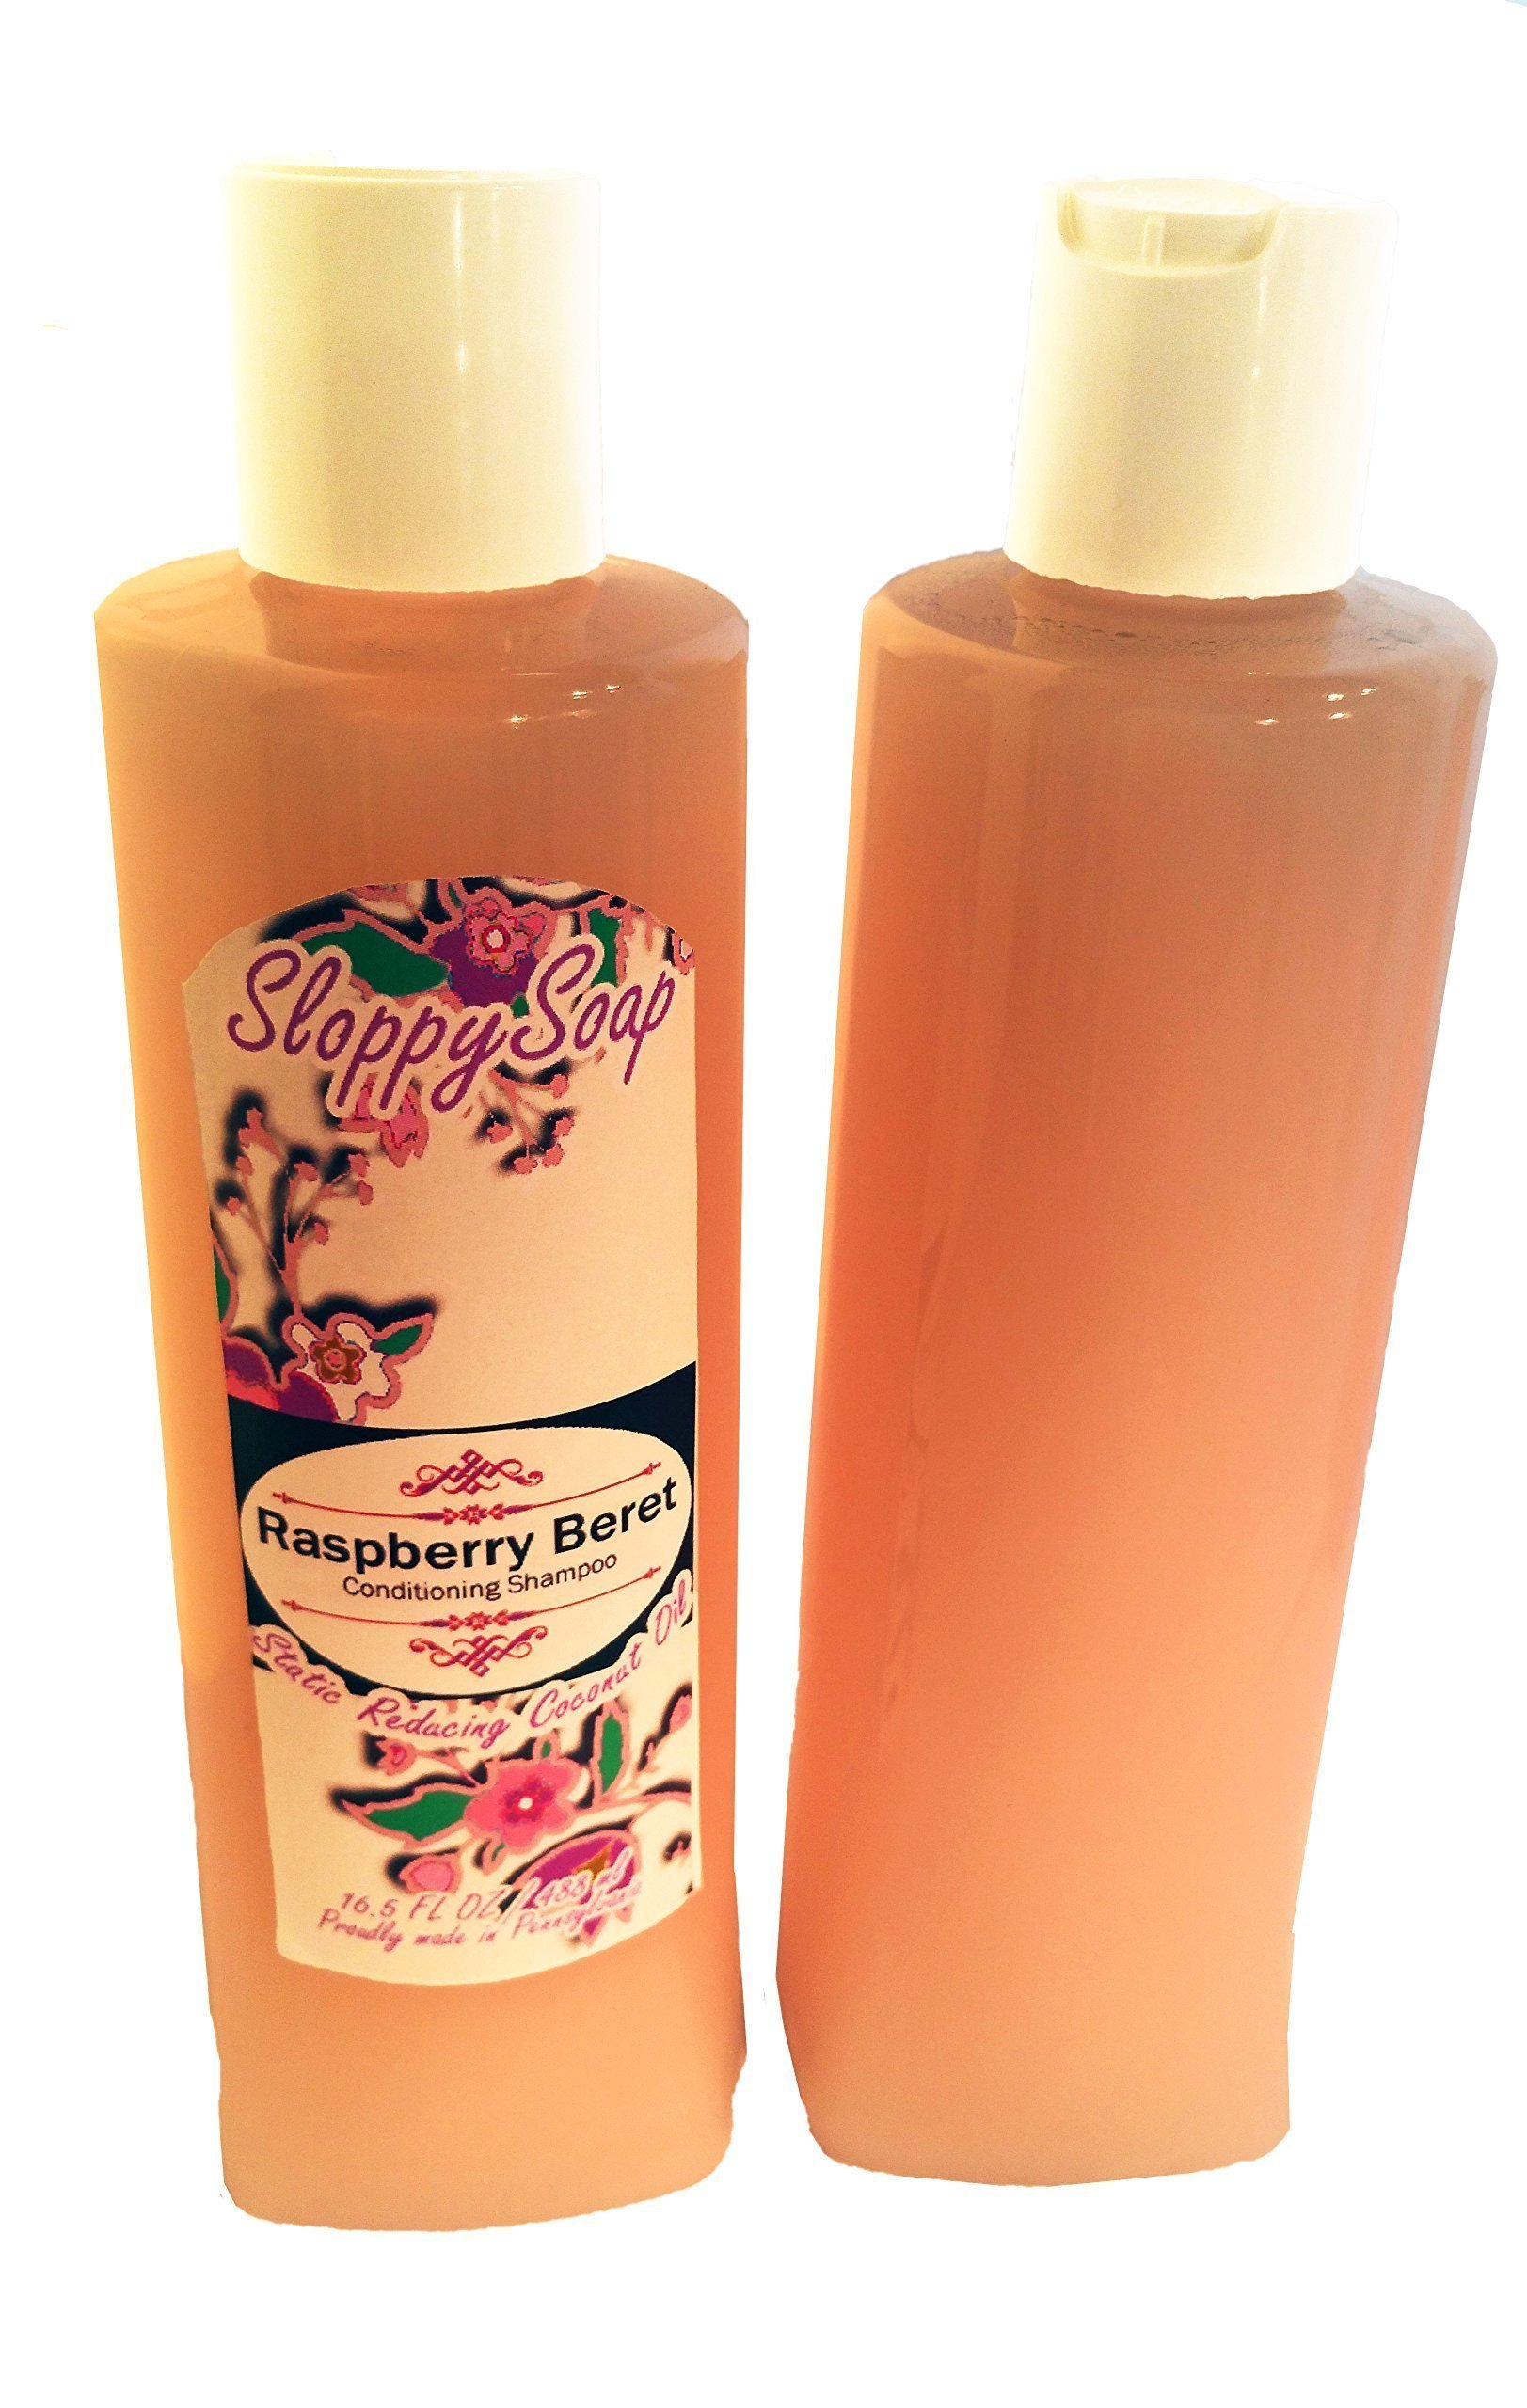 Raspberry Beret Conditioning Shampoo